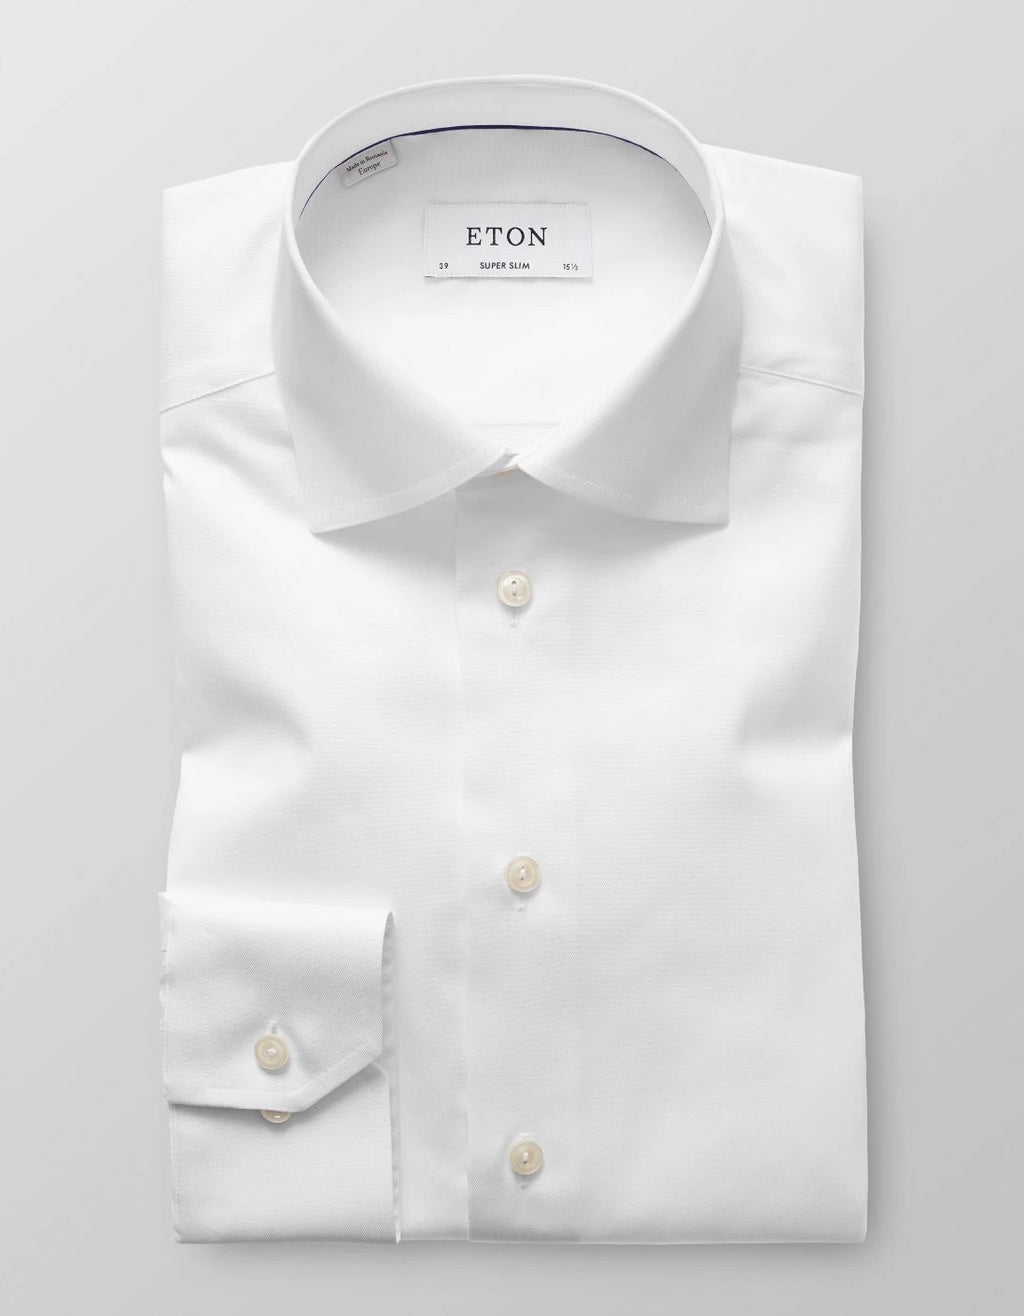 Premium quality formal men's shirt in white signature twill